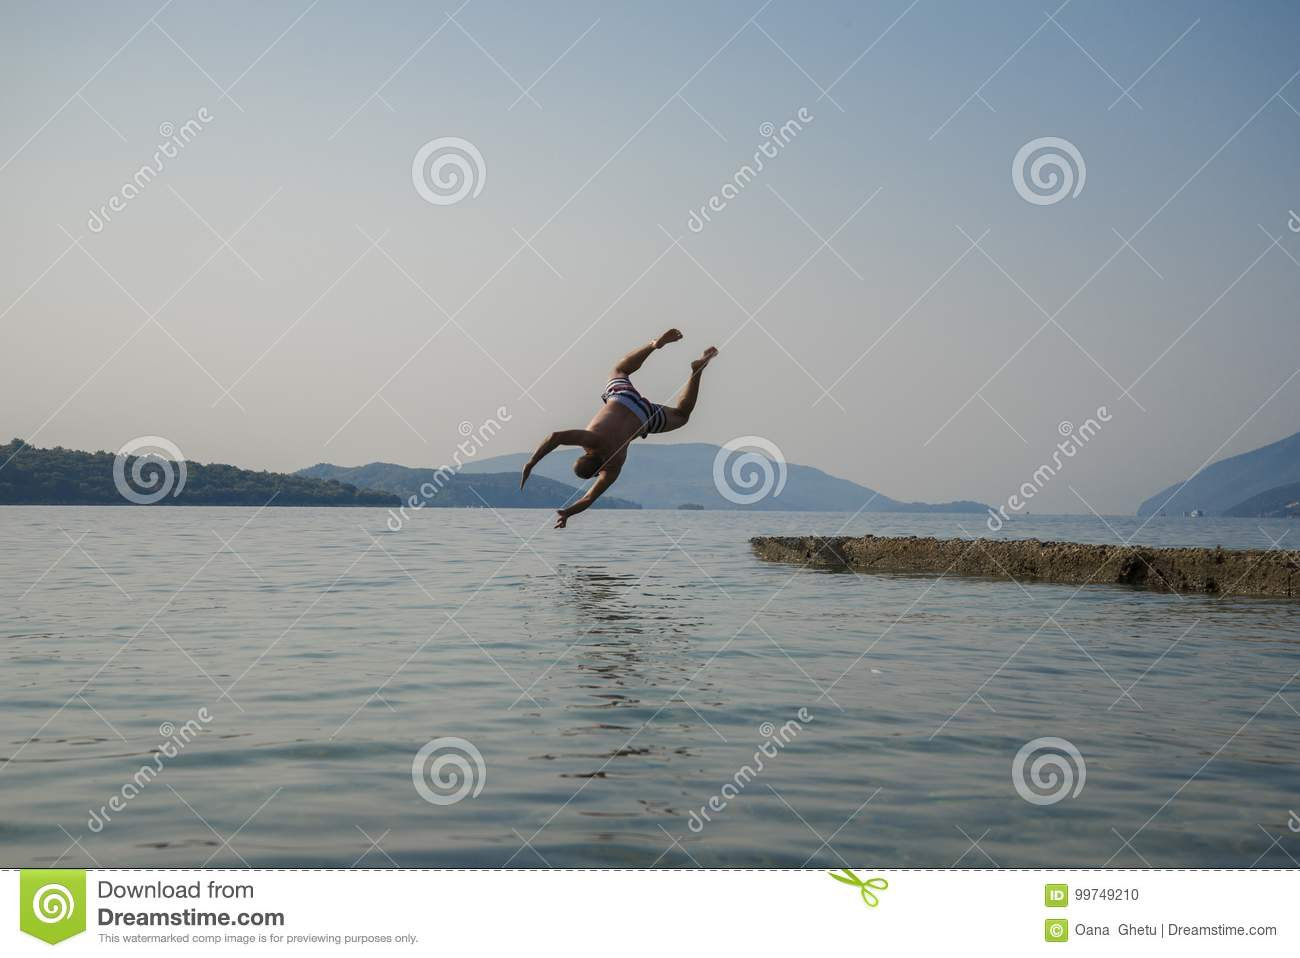 A man jumping into the water